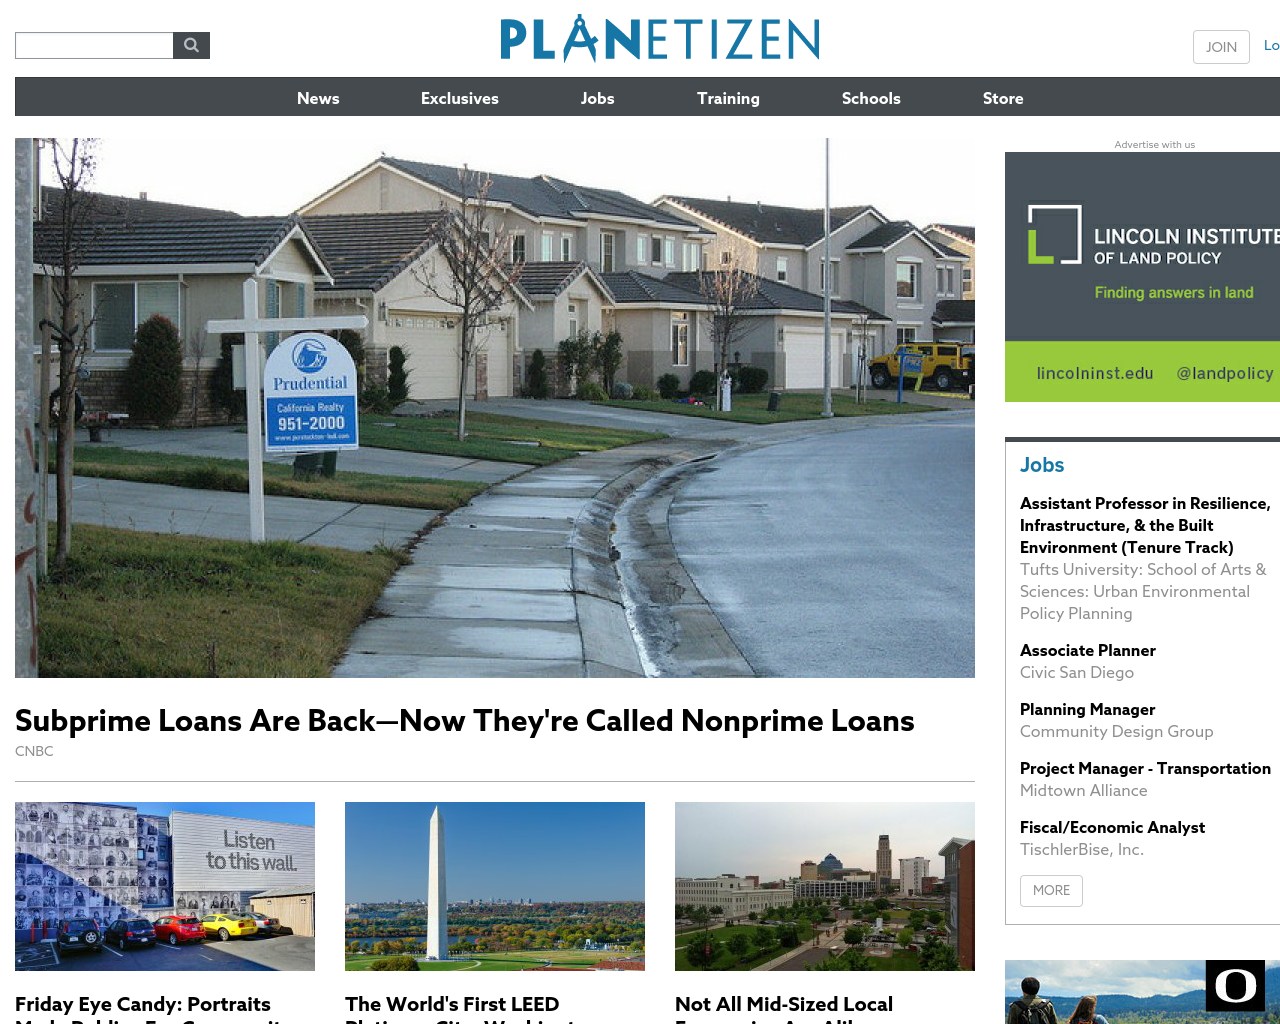 PLANETIZEN-Advertising-Reviews-Pricing